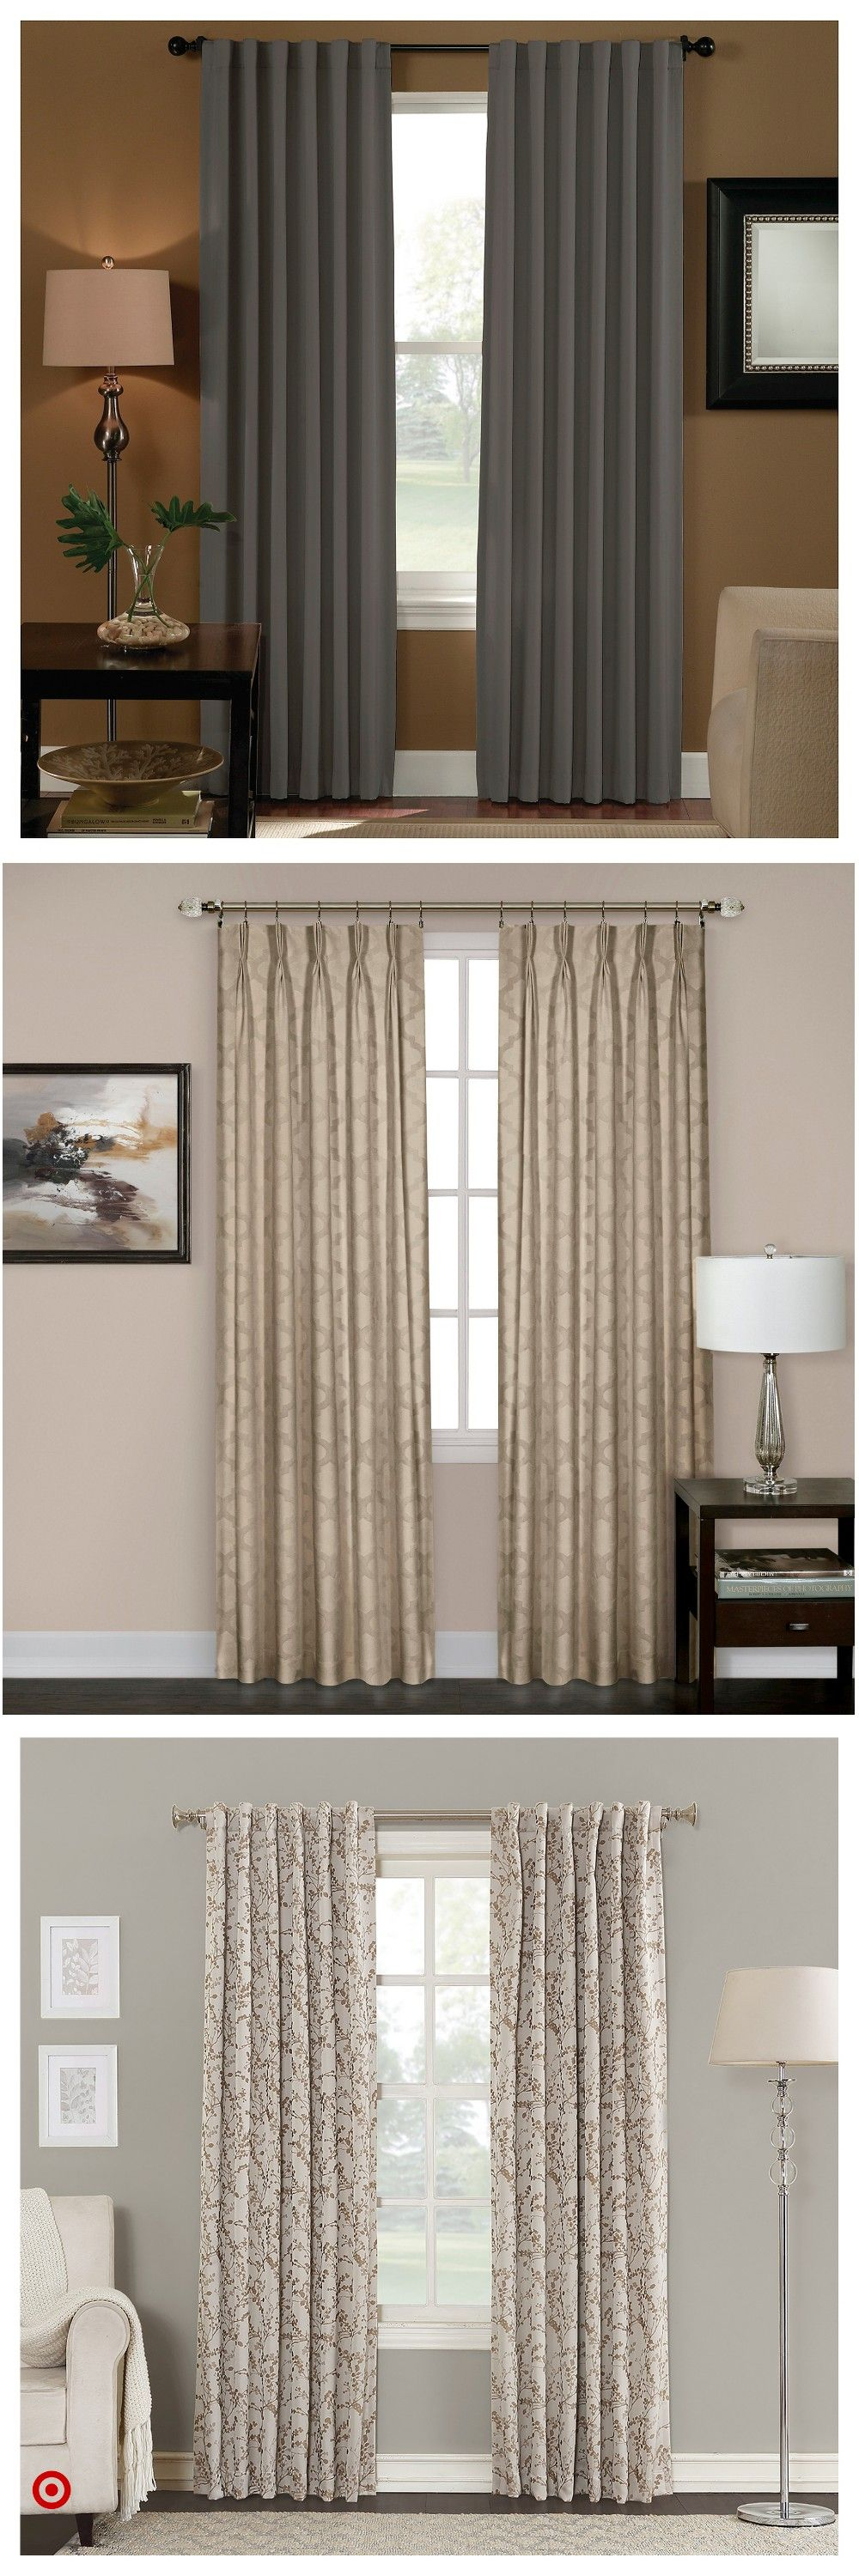 Shop Target For Pinch Pleat Back Tab You Will Love At Great Low Prices Living Room Decor Curtains Curtains Living Room Rustic Drapes Curtains Living Room